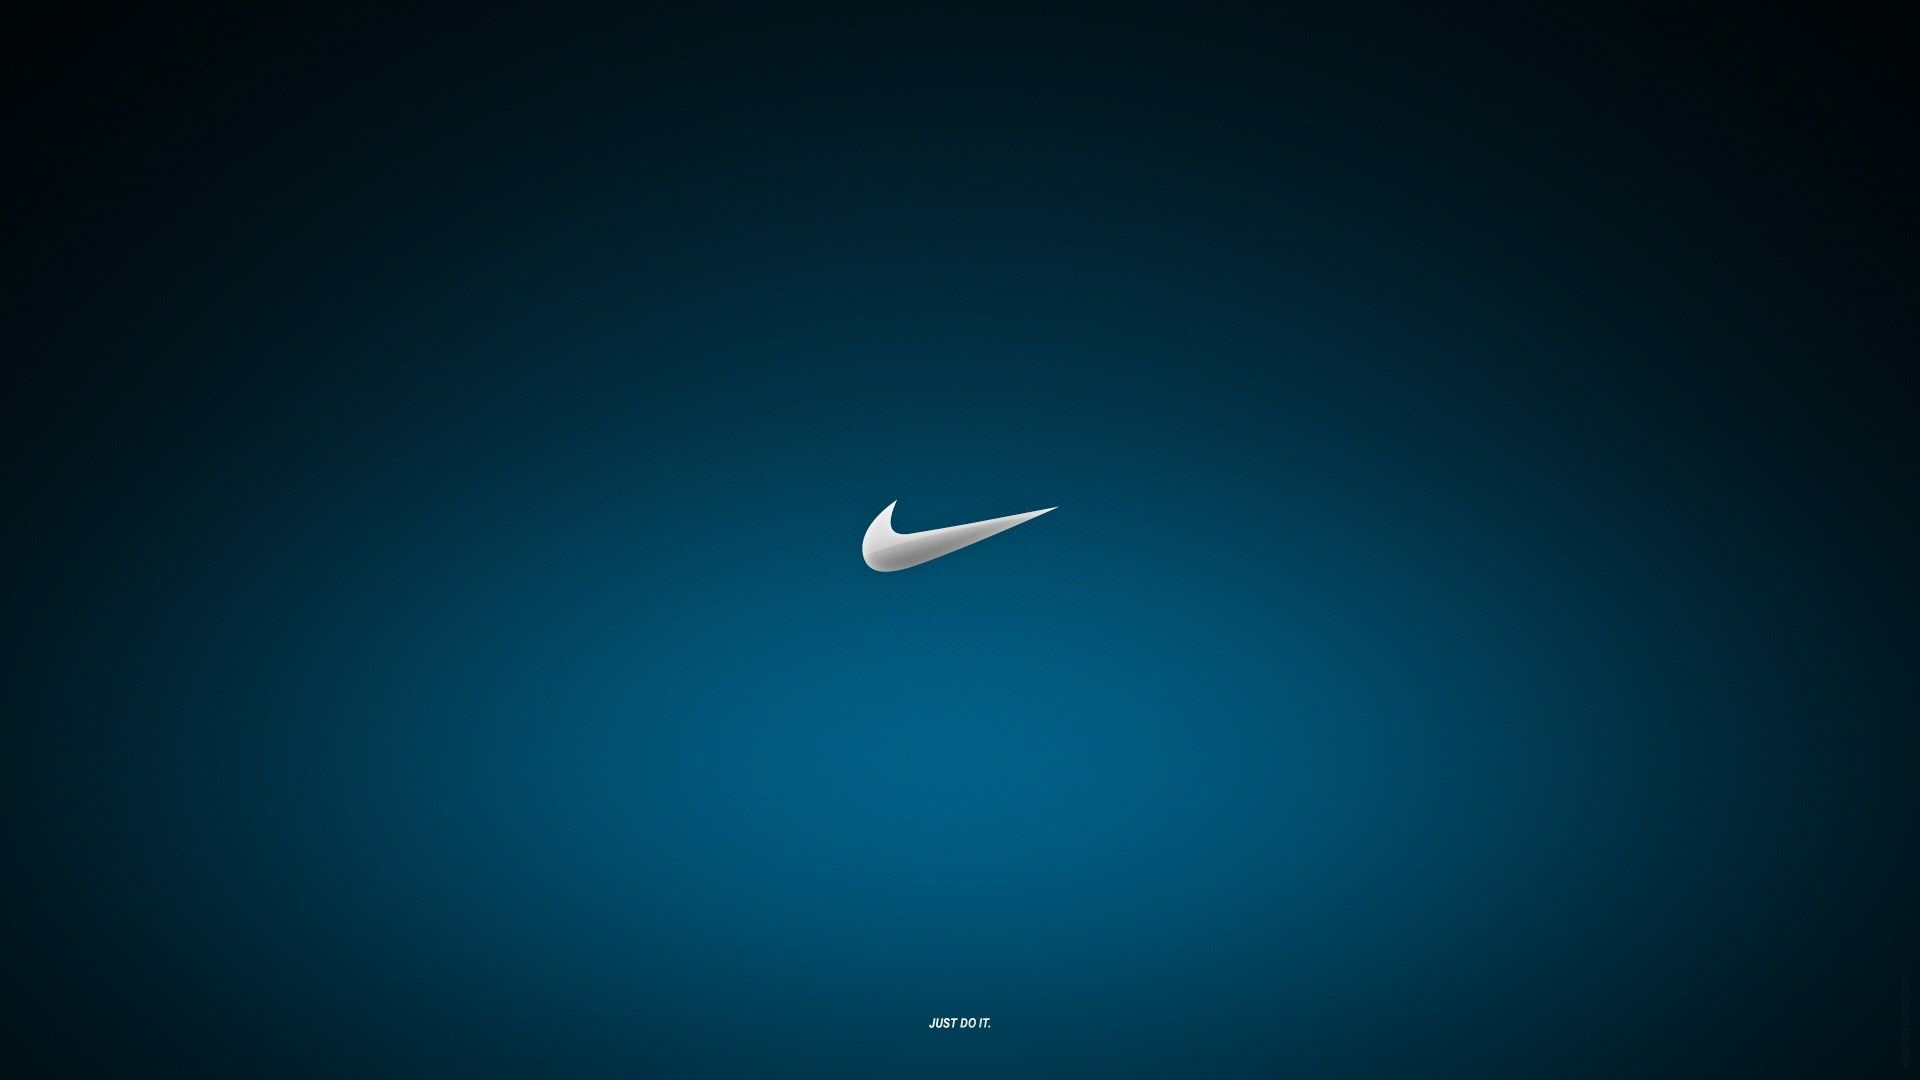 Cool nike backgrounds wallpaper hd wallpapers pinterest hd cool nike backgrounds wallpaper voltagebd Gallery